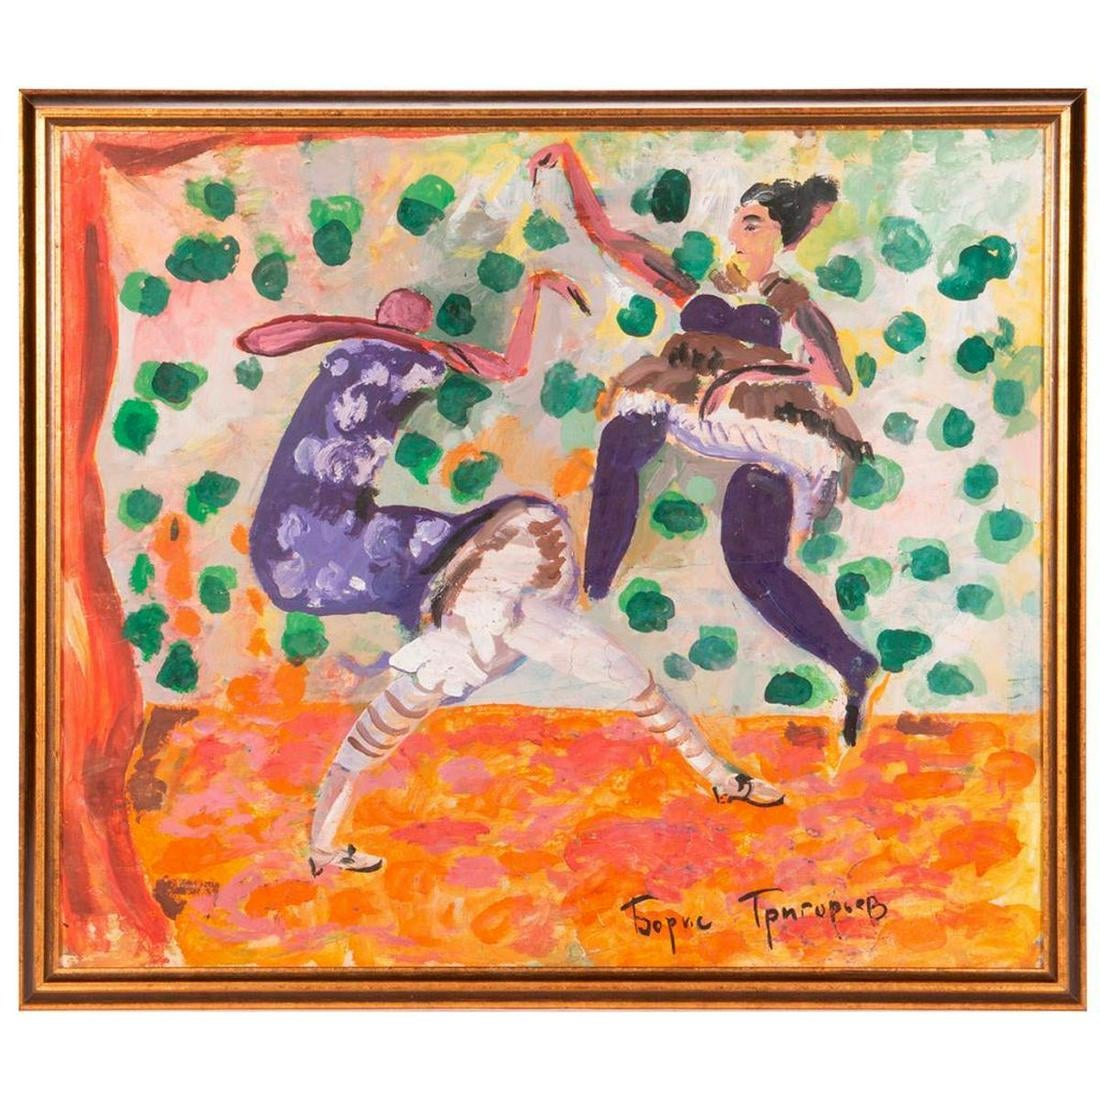 Lot 51, Gouache on paper of dancers attributed on artwork to Boris Gregoriev; Estimate $2,000-$3,000